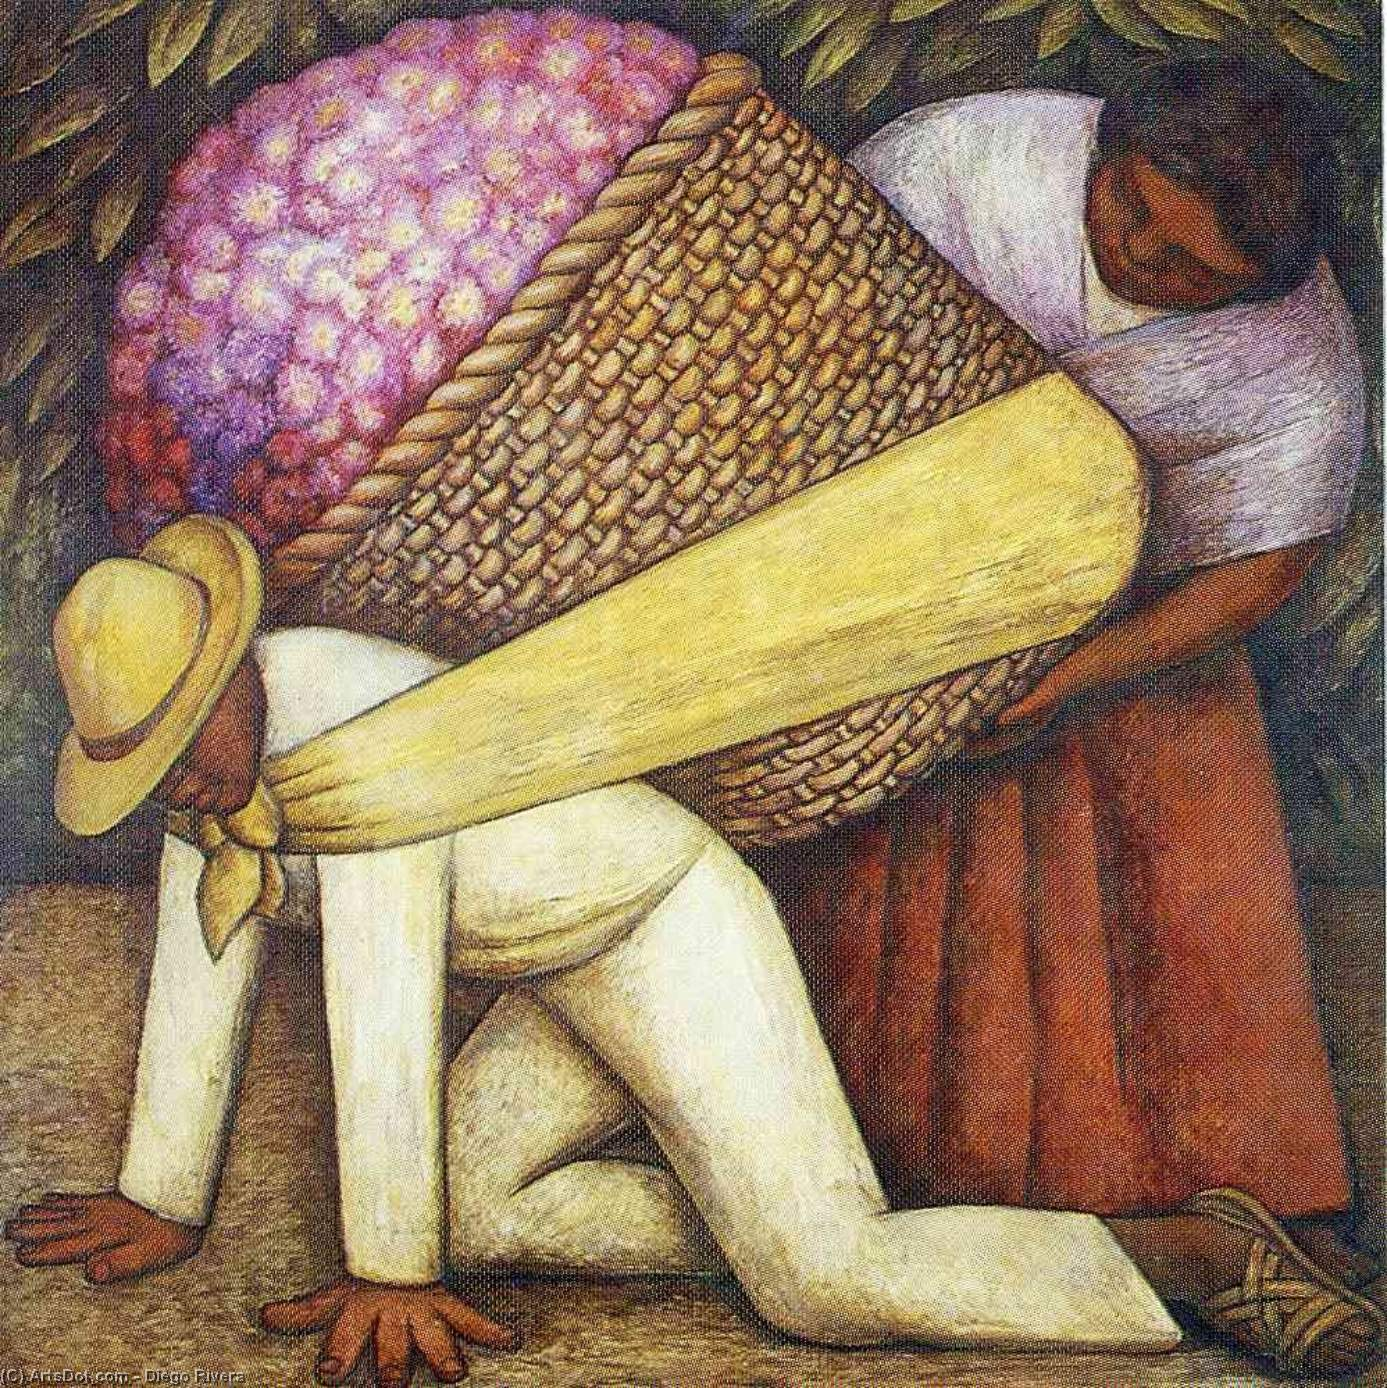 The Flower Carrier, Oil, Painting by Diego Rivera (1886-1957, Mexico)